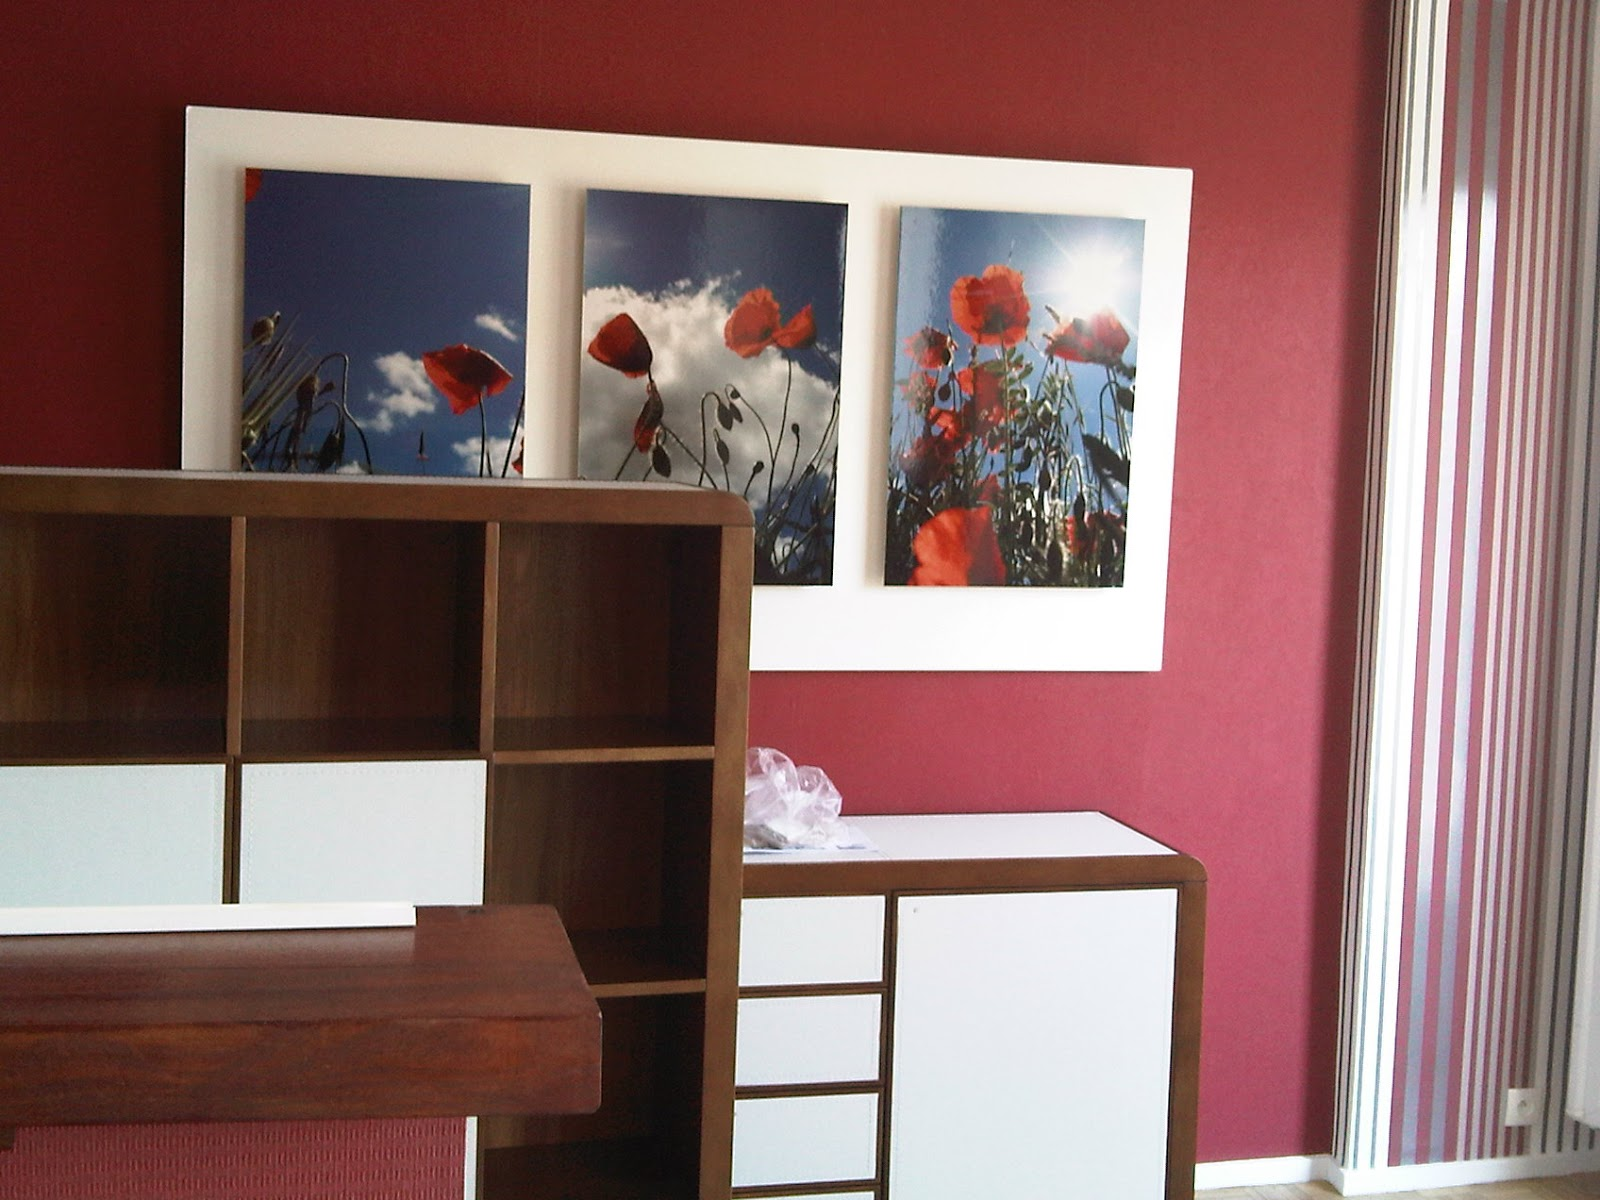 artisan peintre courbevoie meilleure renovation. Black Bedroom Furniture Sets. Home Design Ideas